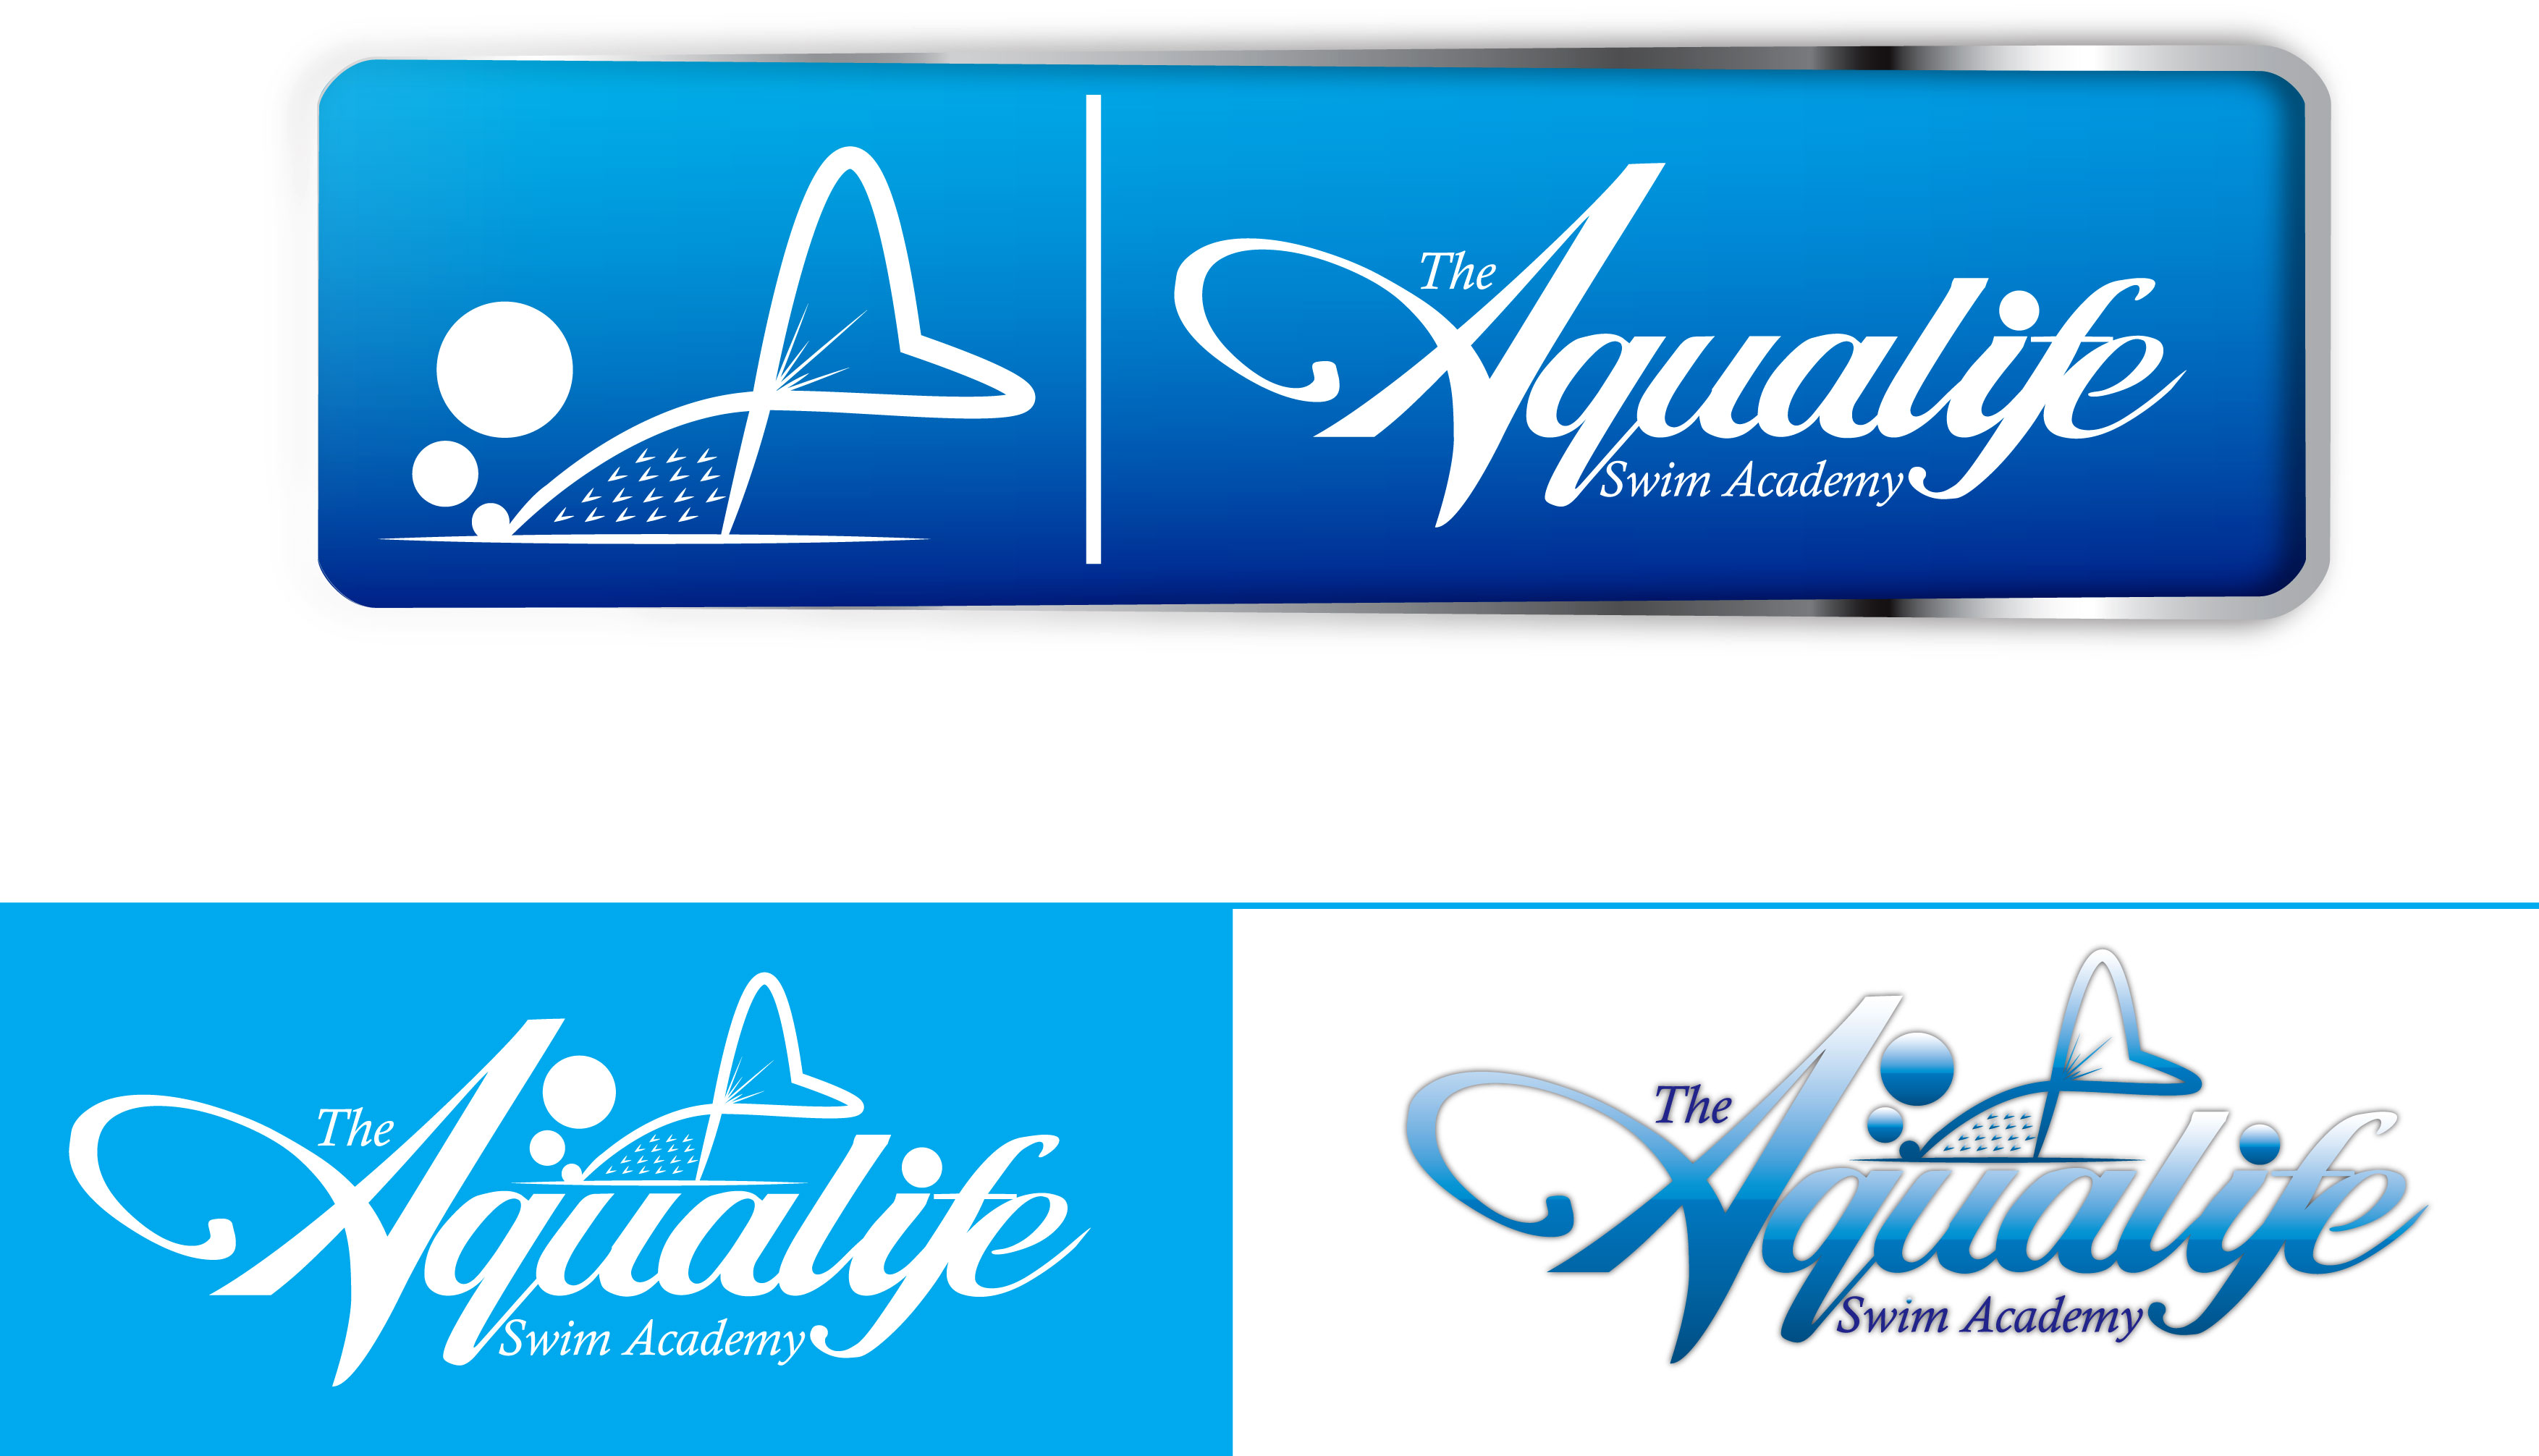 Logo Design by Dit Pambudi - Entry No. 46 in the Logo Design Contest Artistic Logo Design Wanted for The Aqua Life Swim Academy.